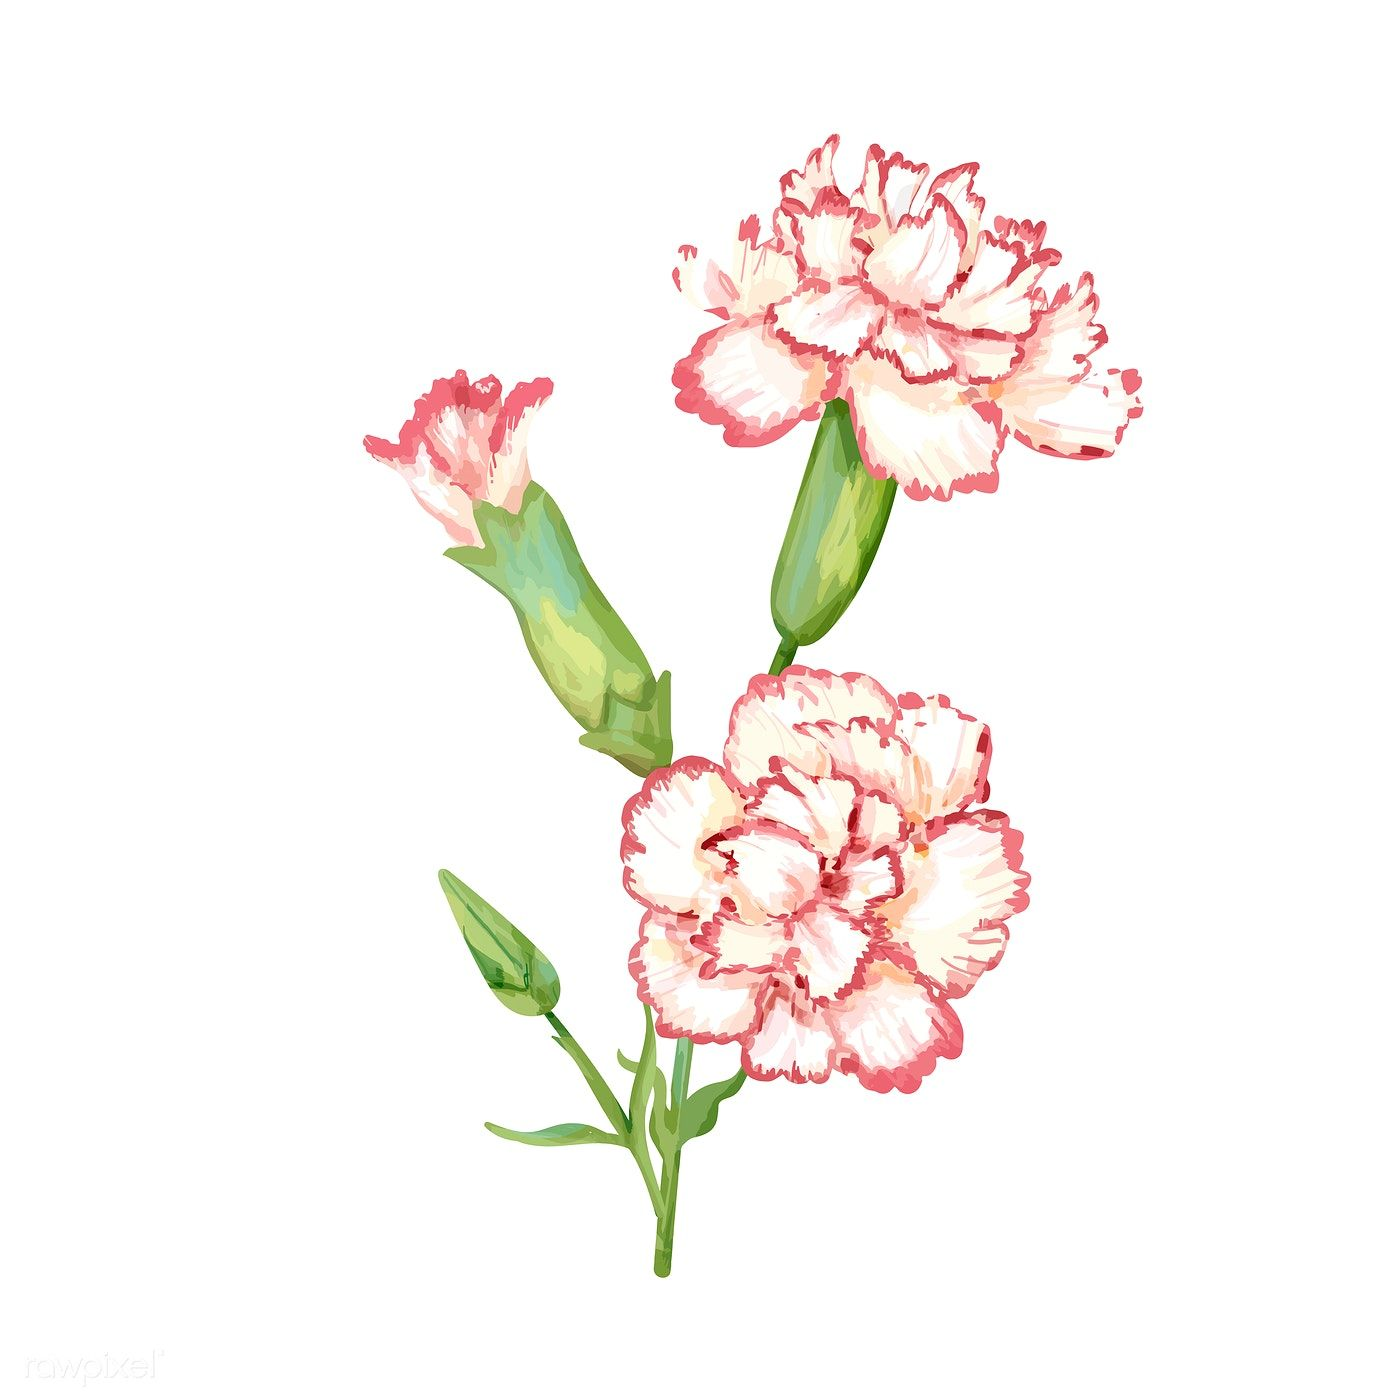 Download Premium Vector Of Hand Drawn Carnation Flower Illustration 421447 Flower Illustration Carnation Flower Tattoo Carnation Flower